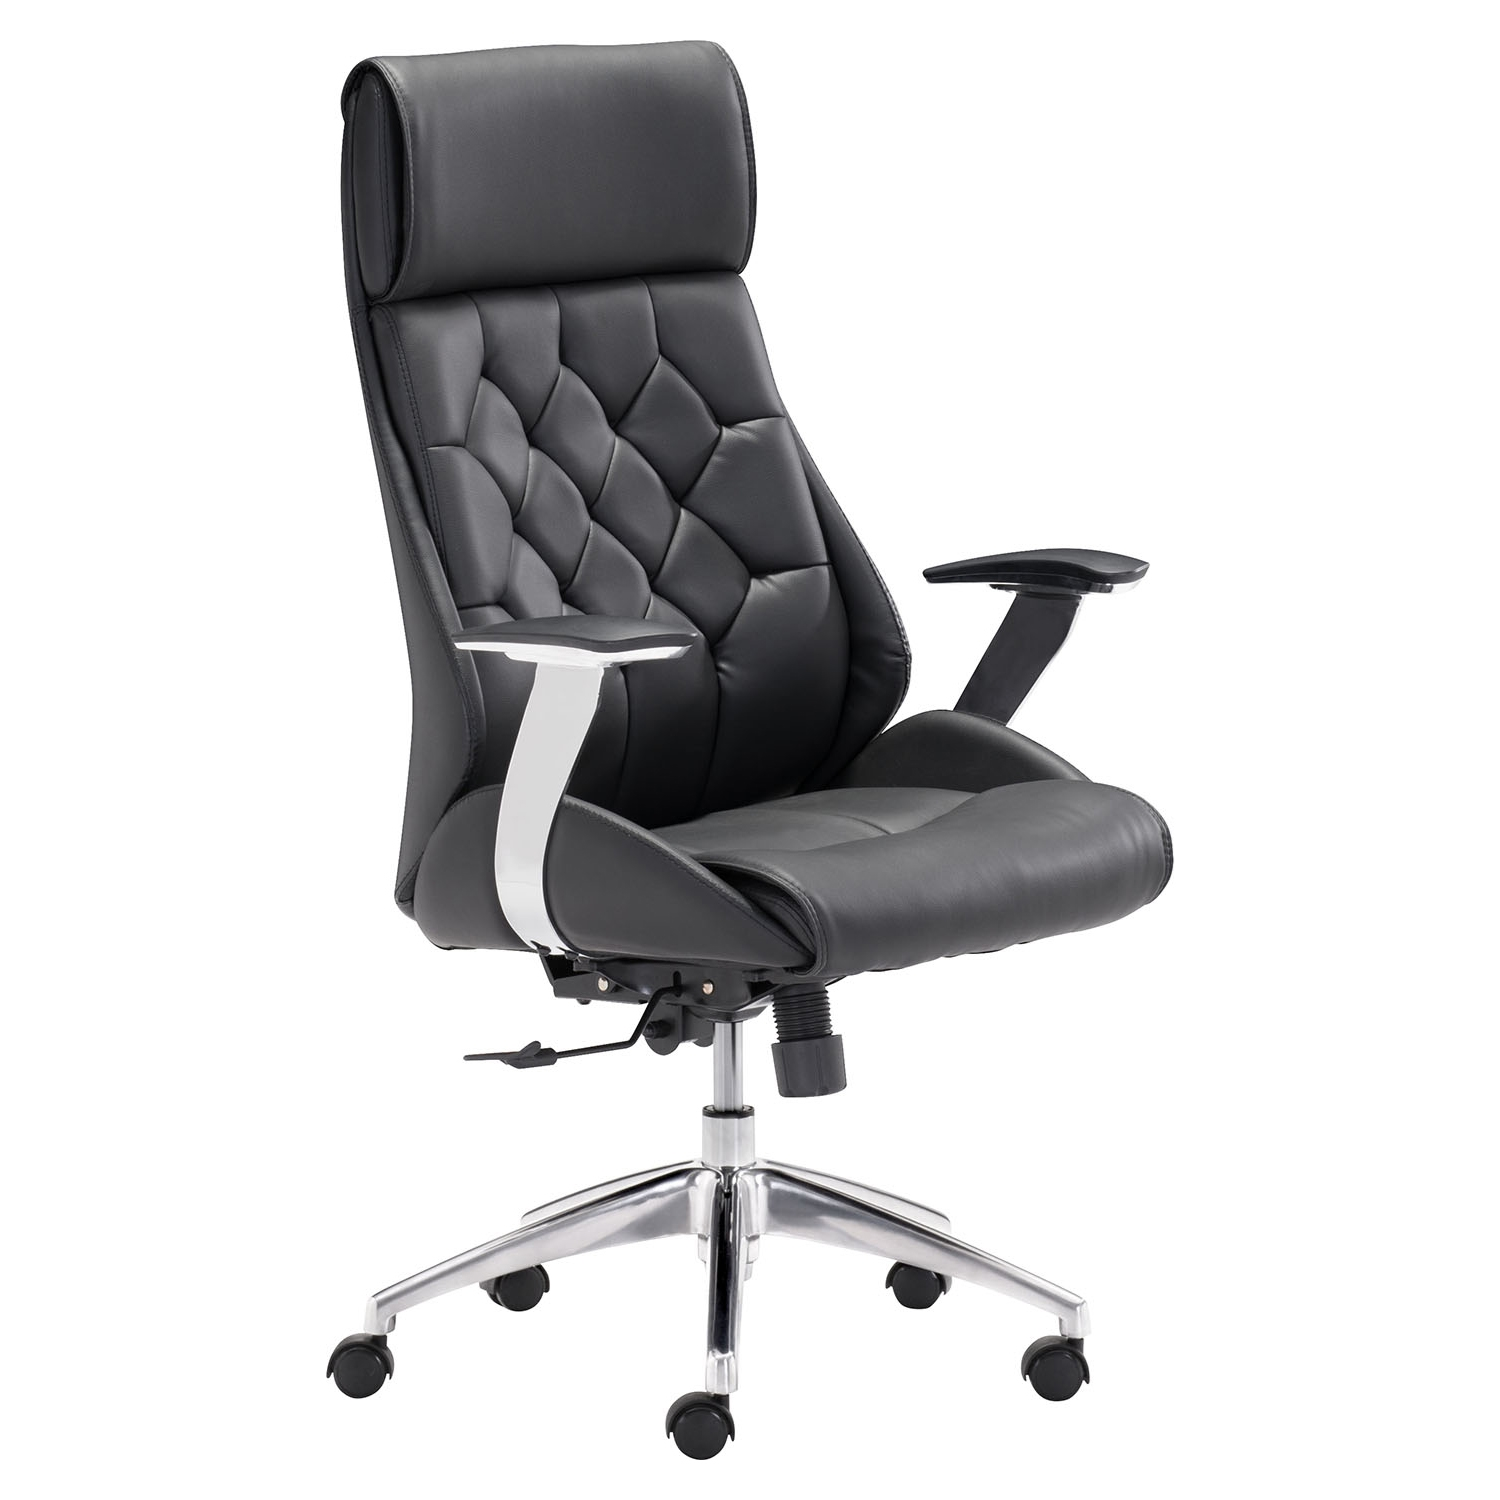 Boutique Office Chair - Adjustable, Casters, Black